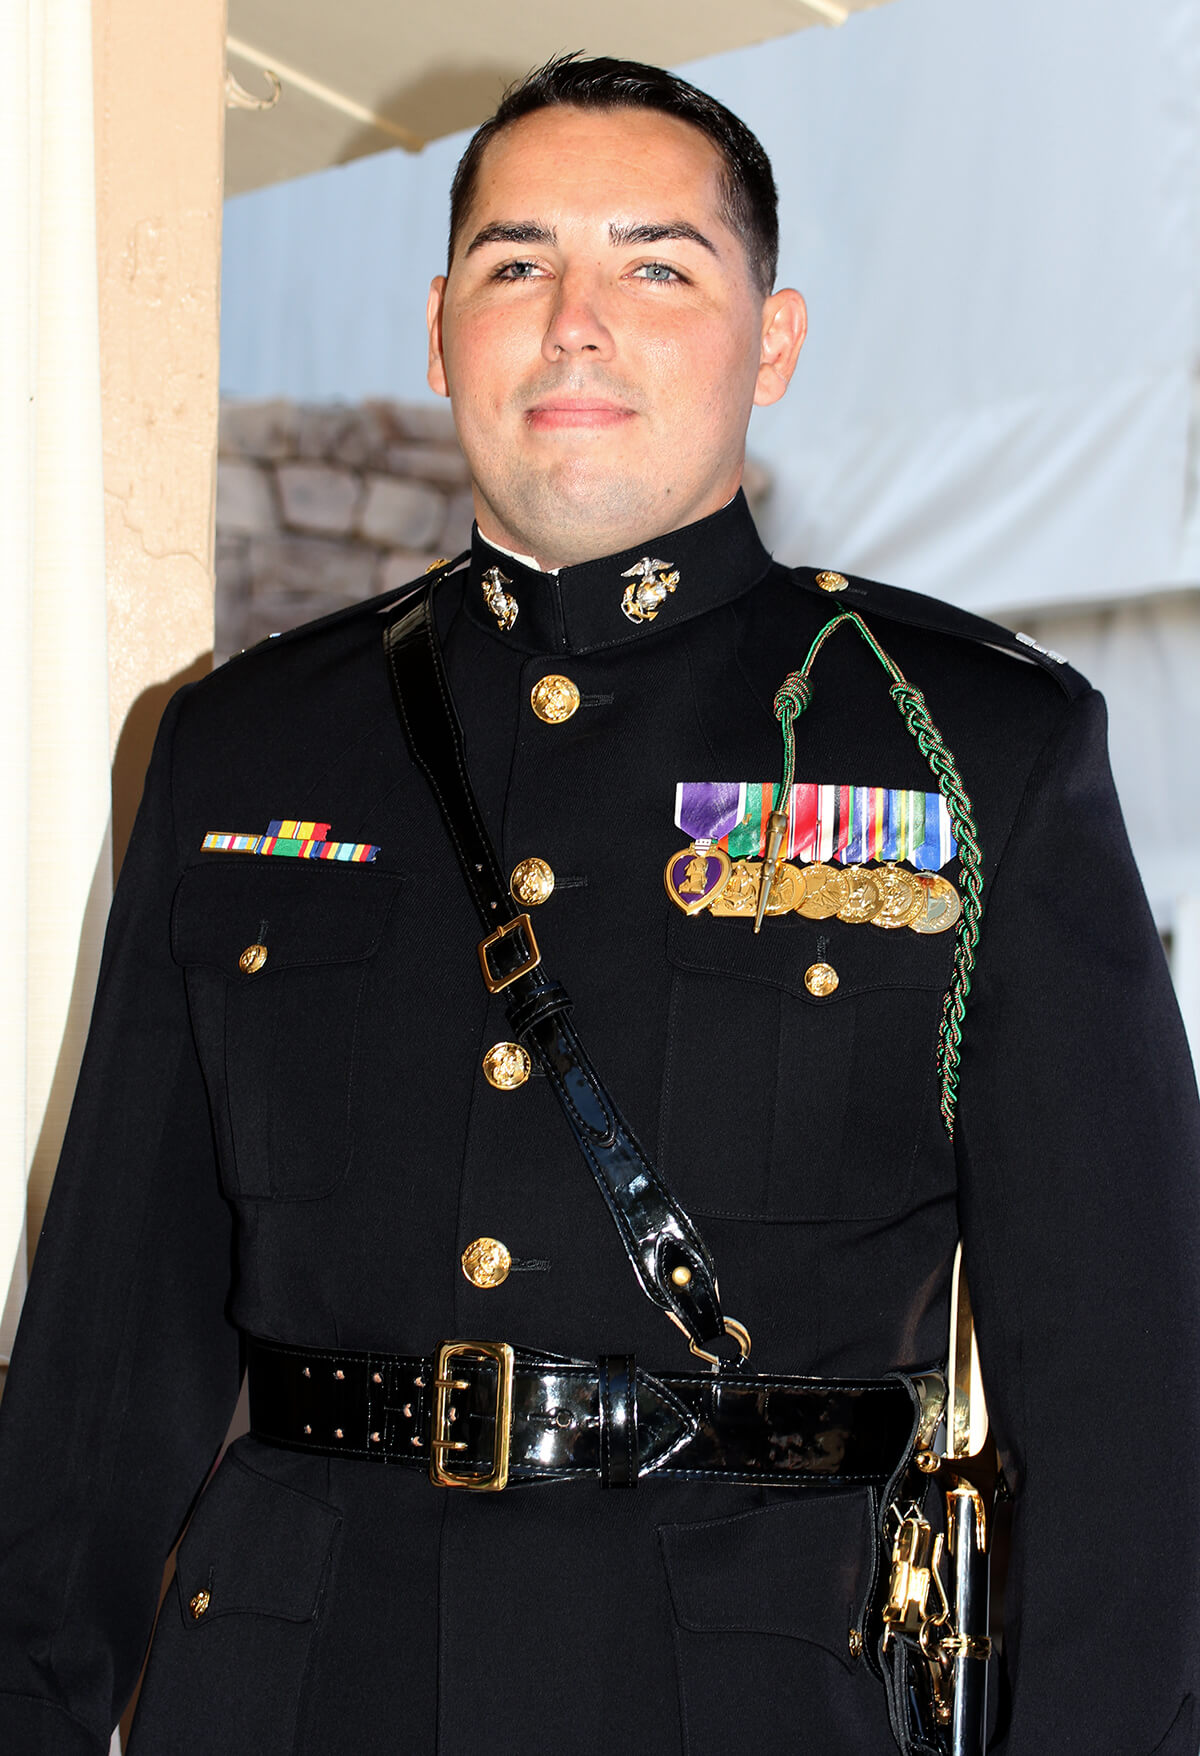 Lt. Cameron West served in the 3rd Battalion, 5th Marine Regiment out of Camp Pendleton in Southern California.